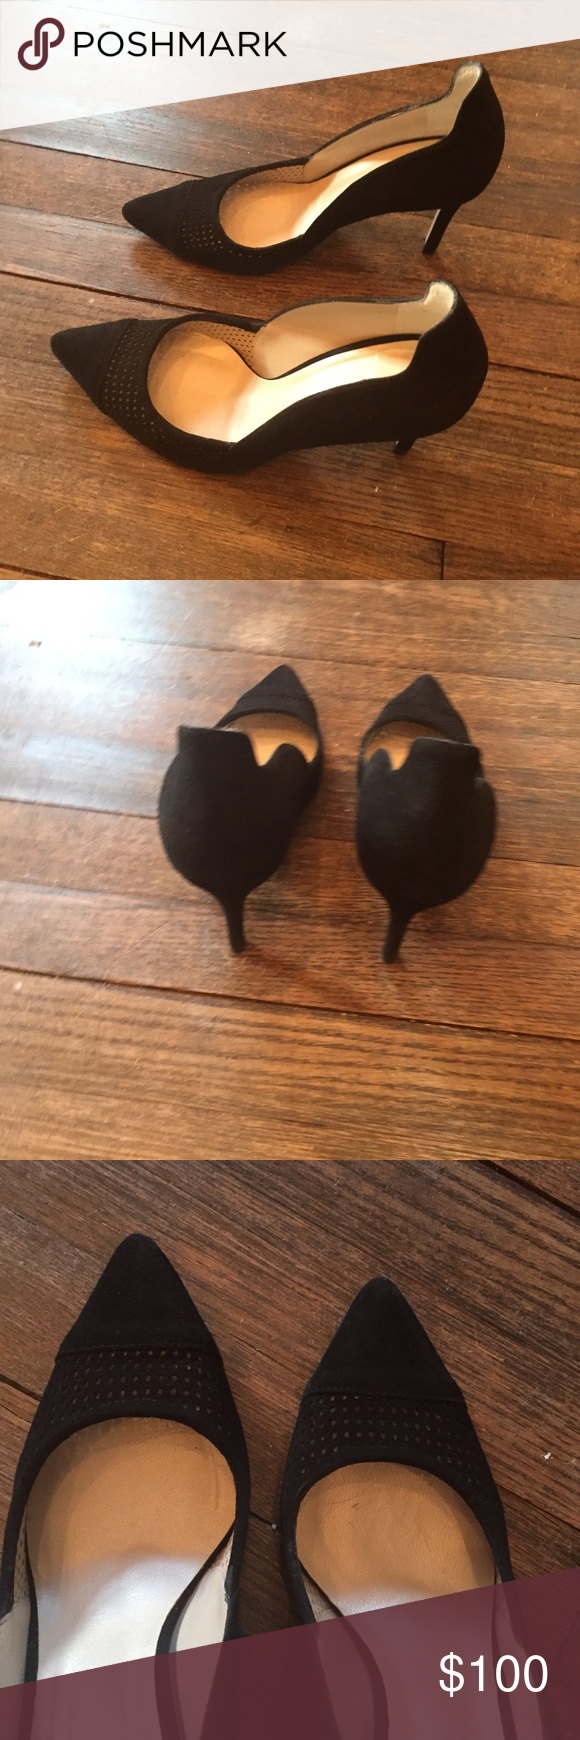 Black suede pumps Karen millen Back sued pumps Worn once my feet are too wide for them. Size 38 or US 8 Karen Millen Shoes Heels